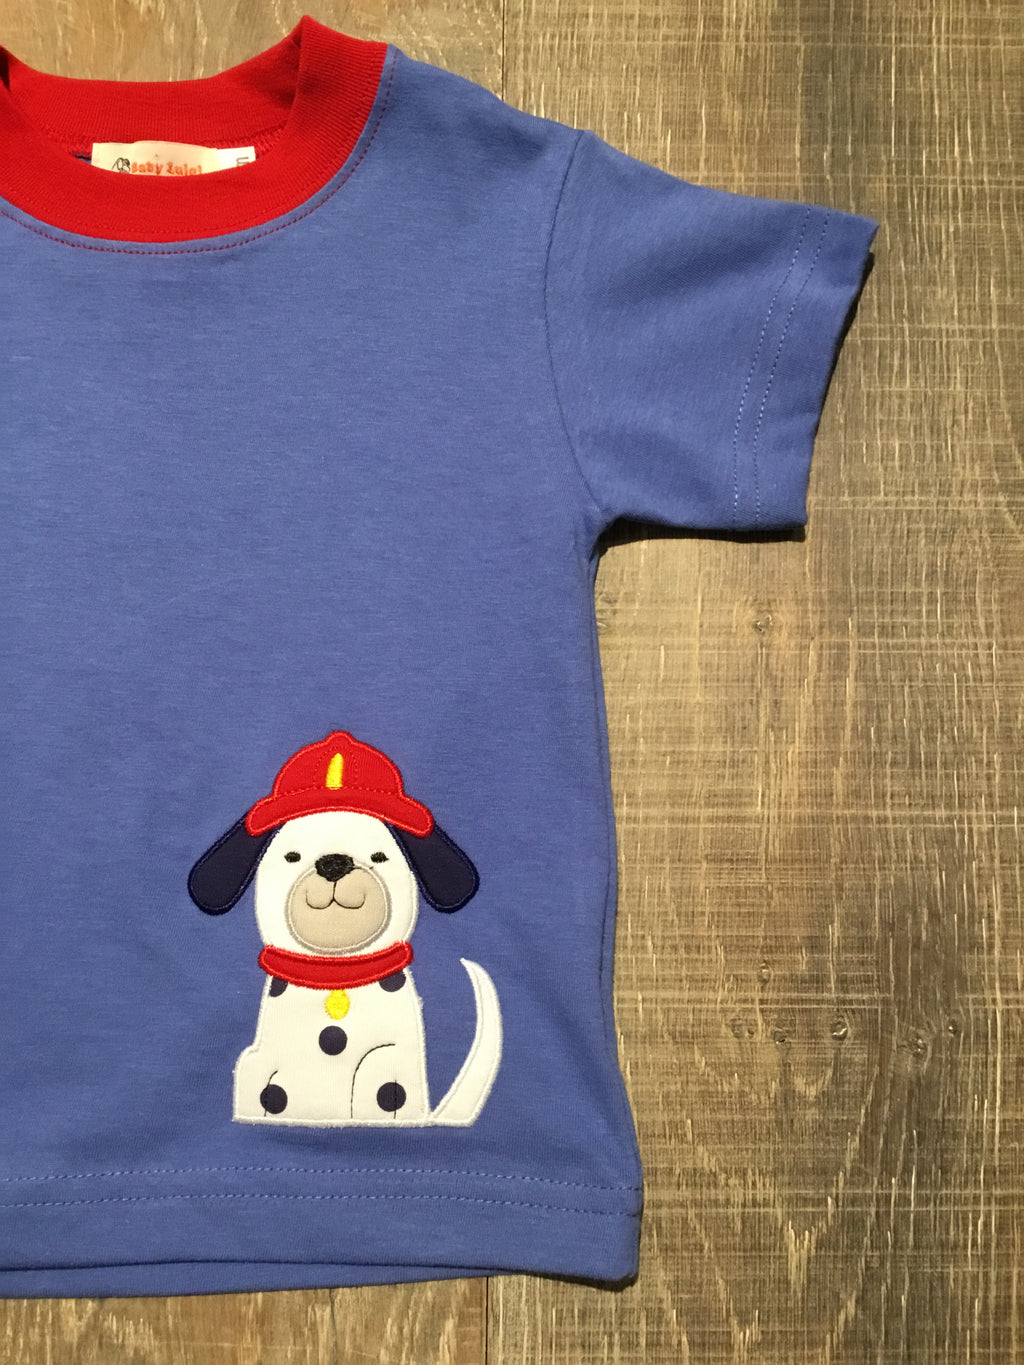 Dalmatian Fire Pup on Chambray Tee